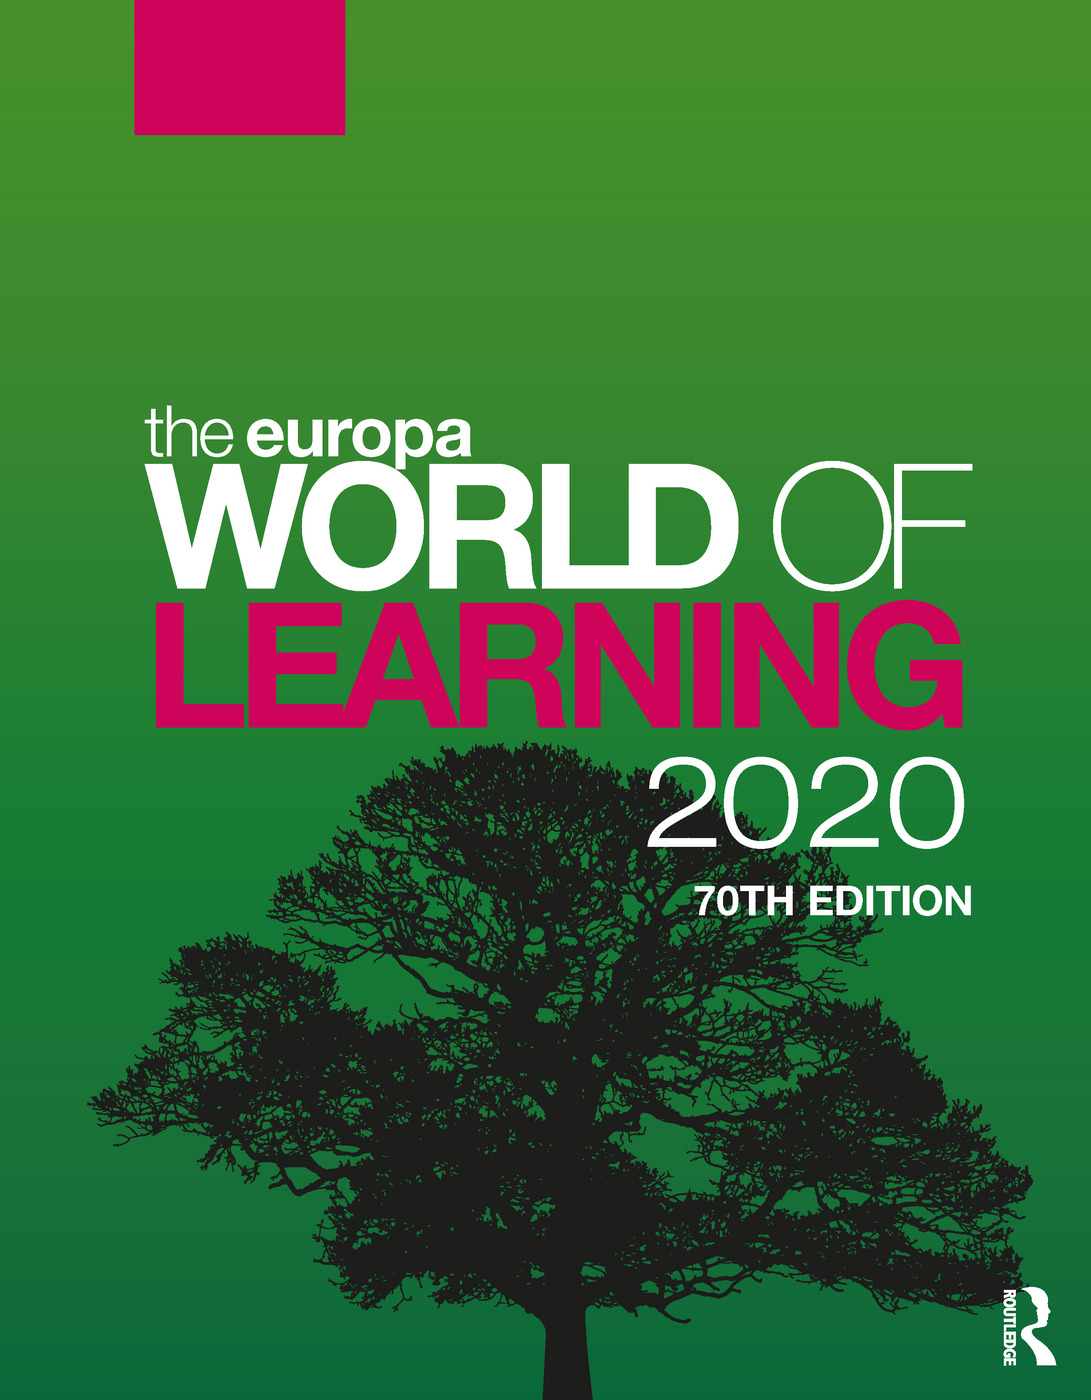 The Europa World of Learning 2020 book cover